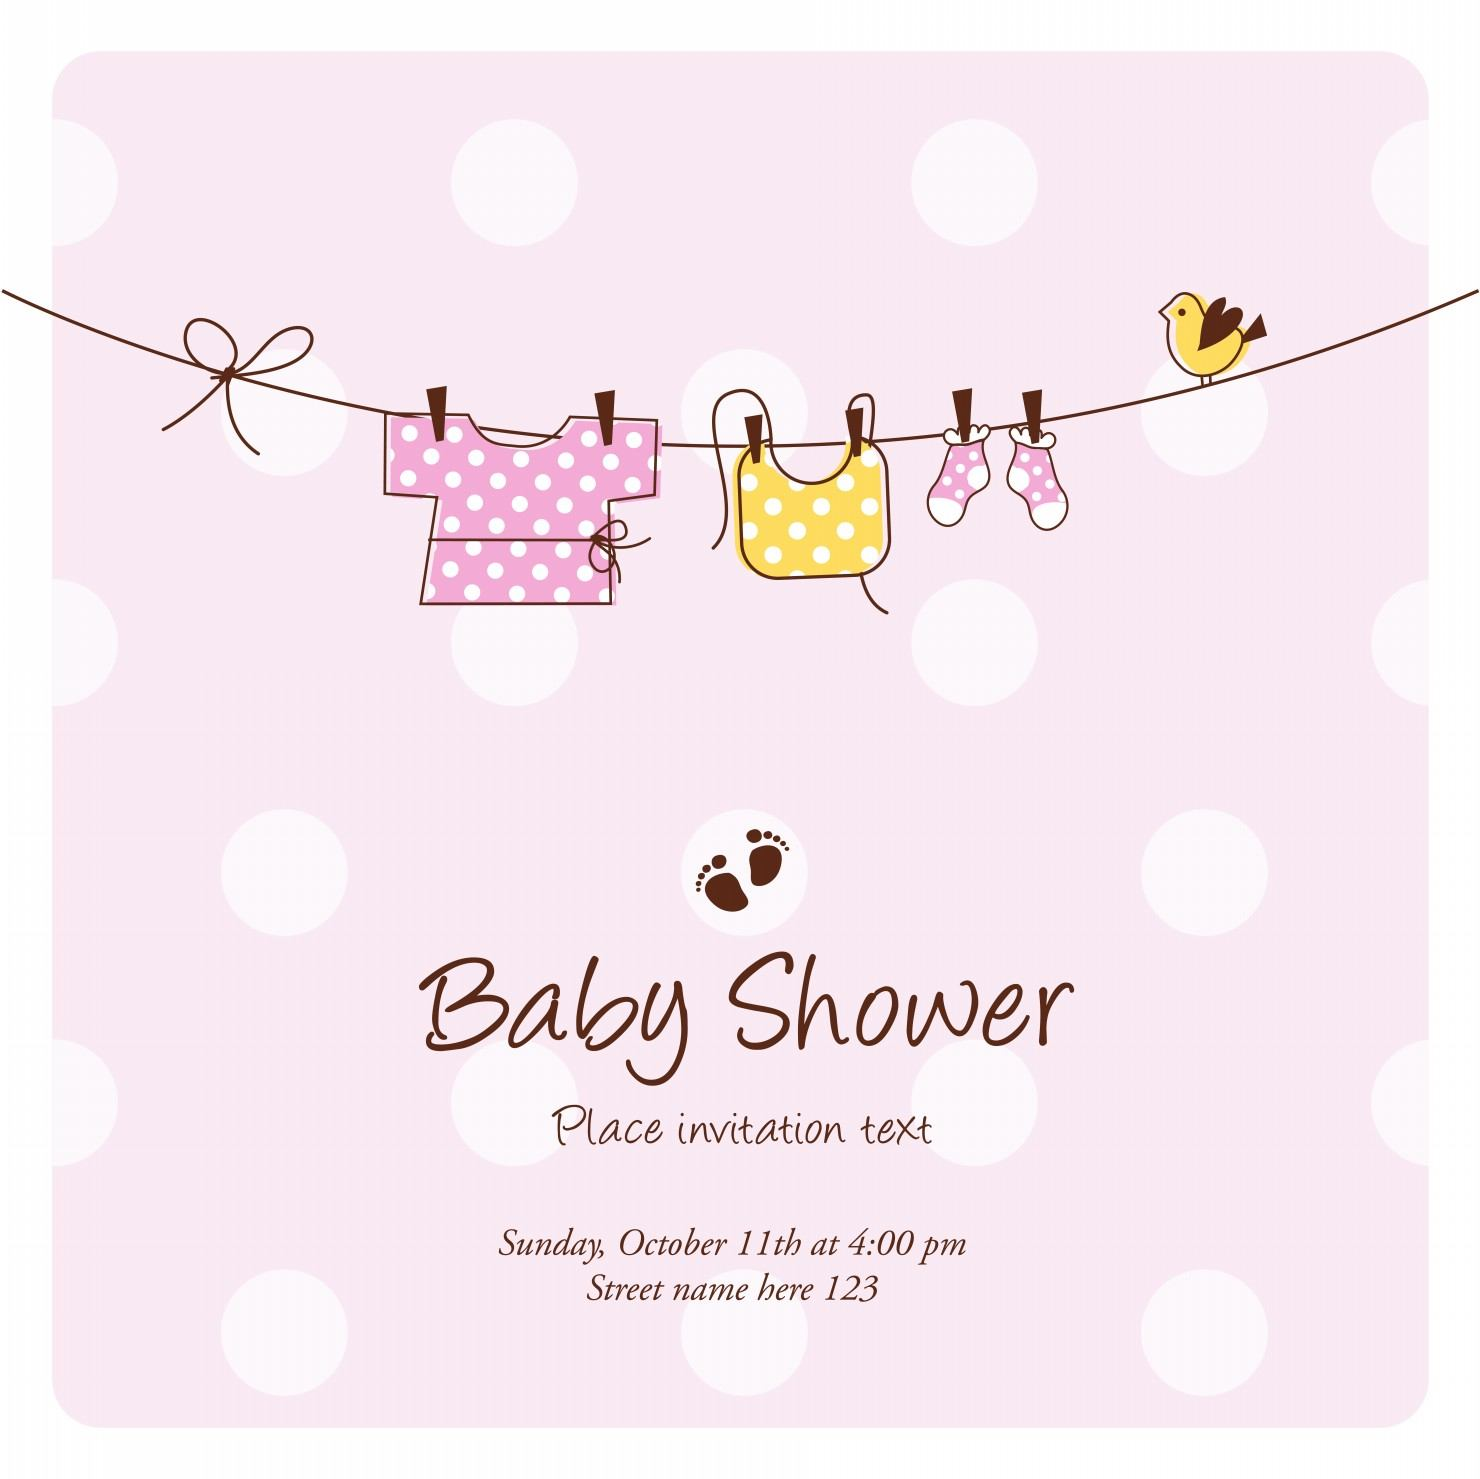 Full Size of Baby Shower:49+ Prime Baby Shower Card Message Photo Concepts Baby Shower Invitations With Fiesta Baby Shower Plus Baby Shower Snapchat Filter Together With Cheap Baby Shower Gifts As Well As Baby Boy Shower Favors And Baby Shower Hostess Gifts